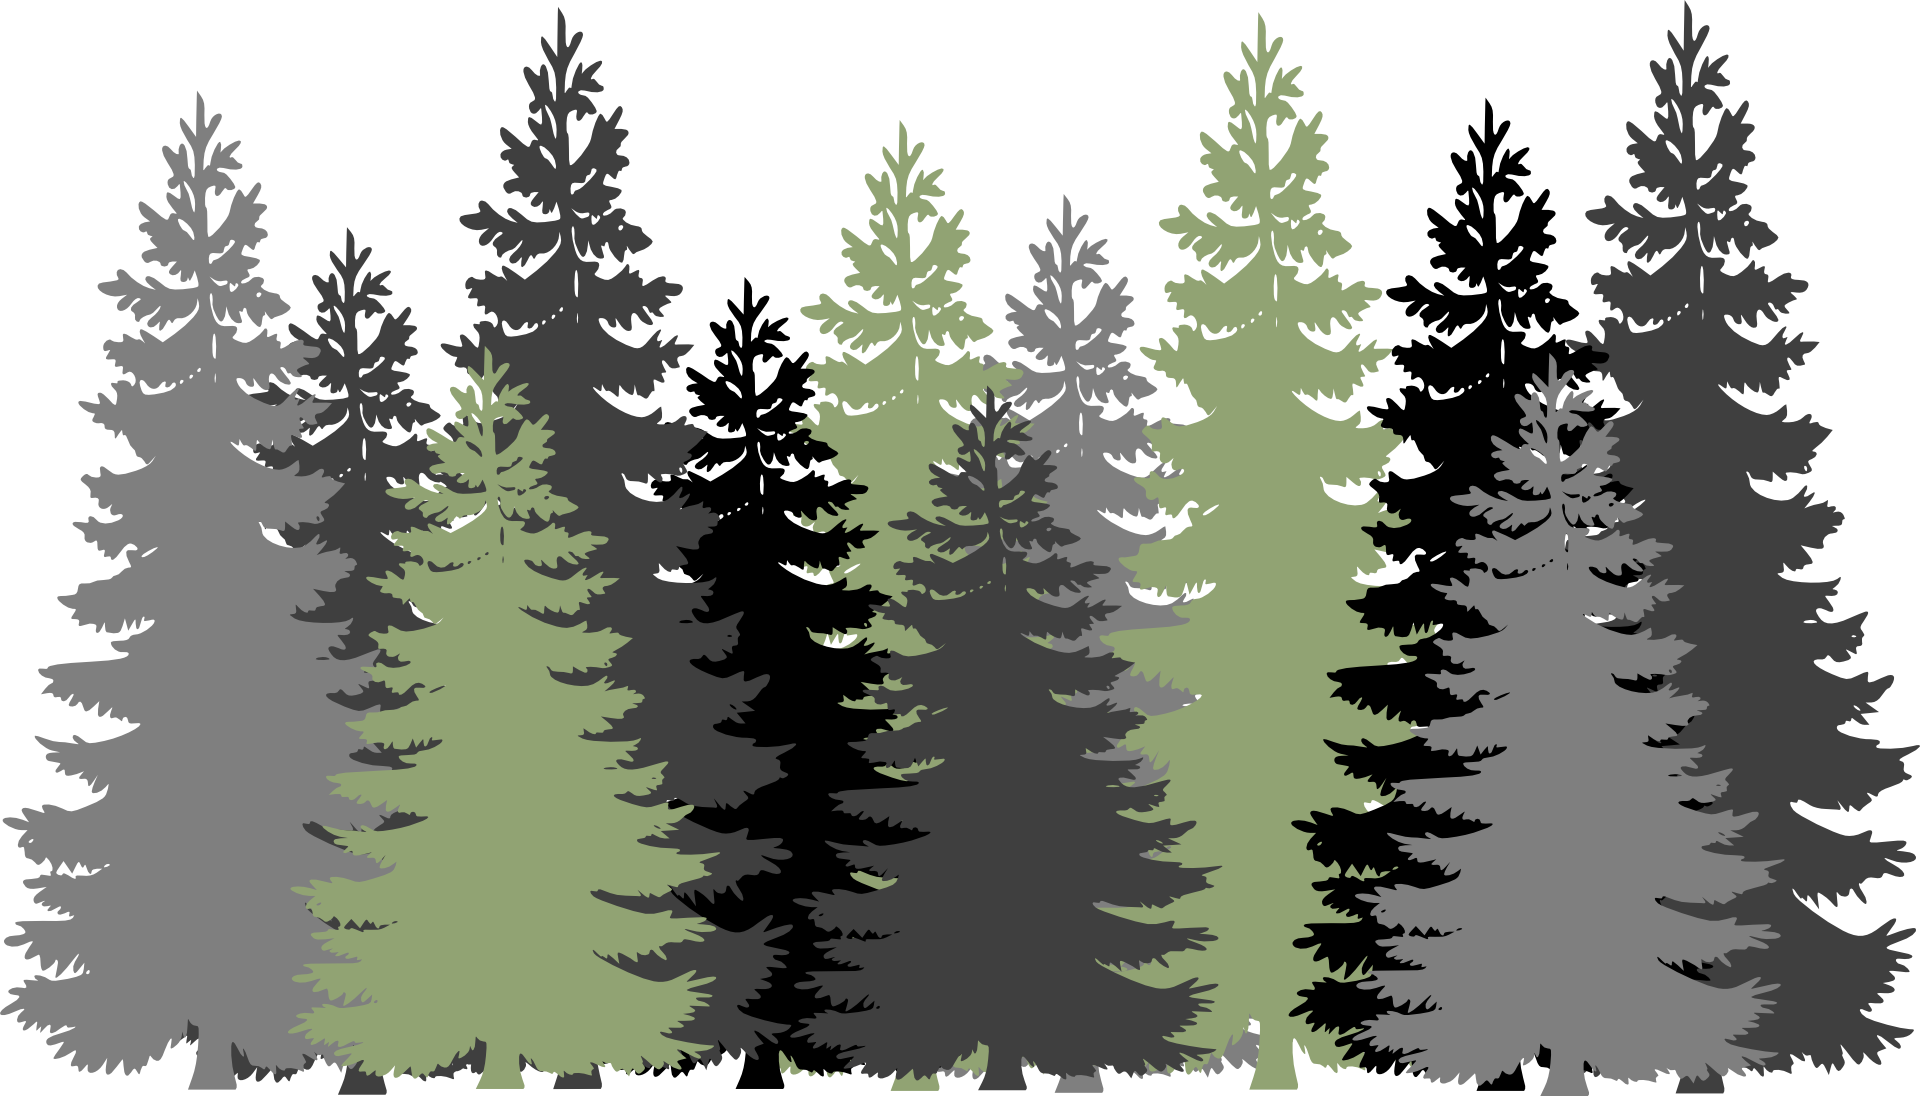 Forest Trees Drawing Free Image